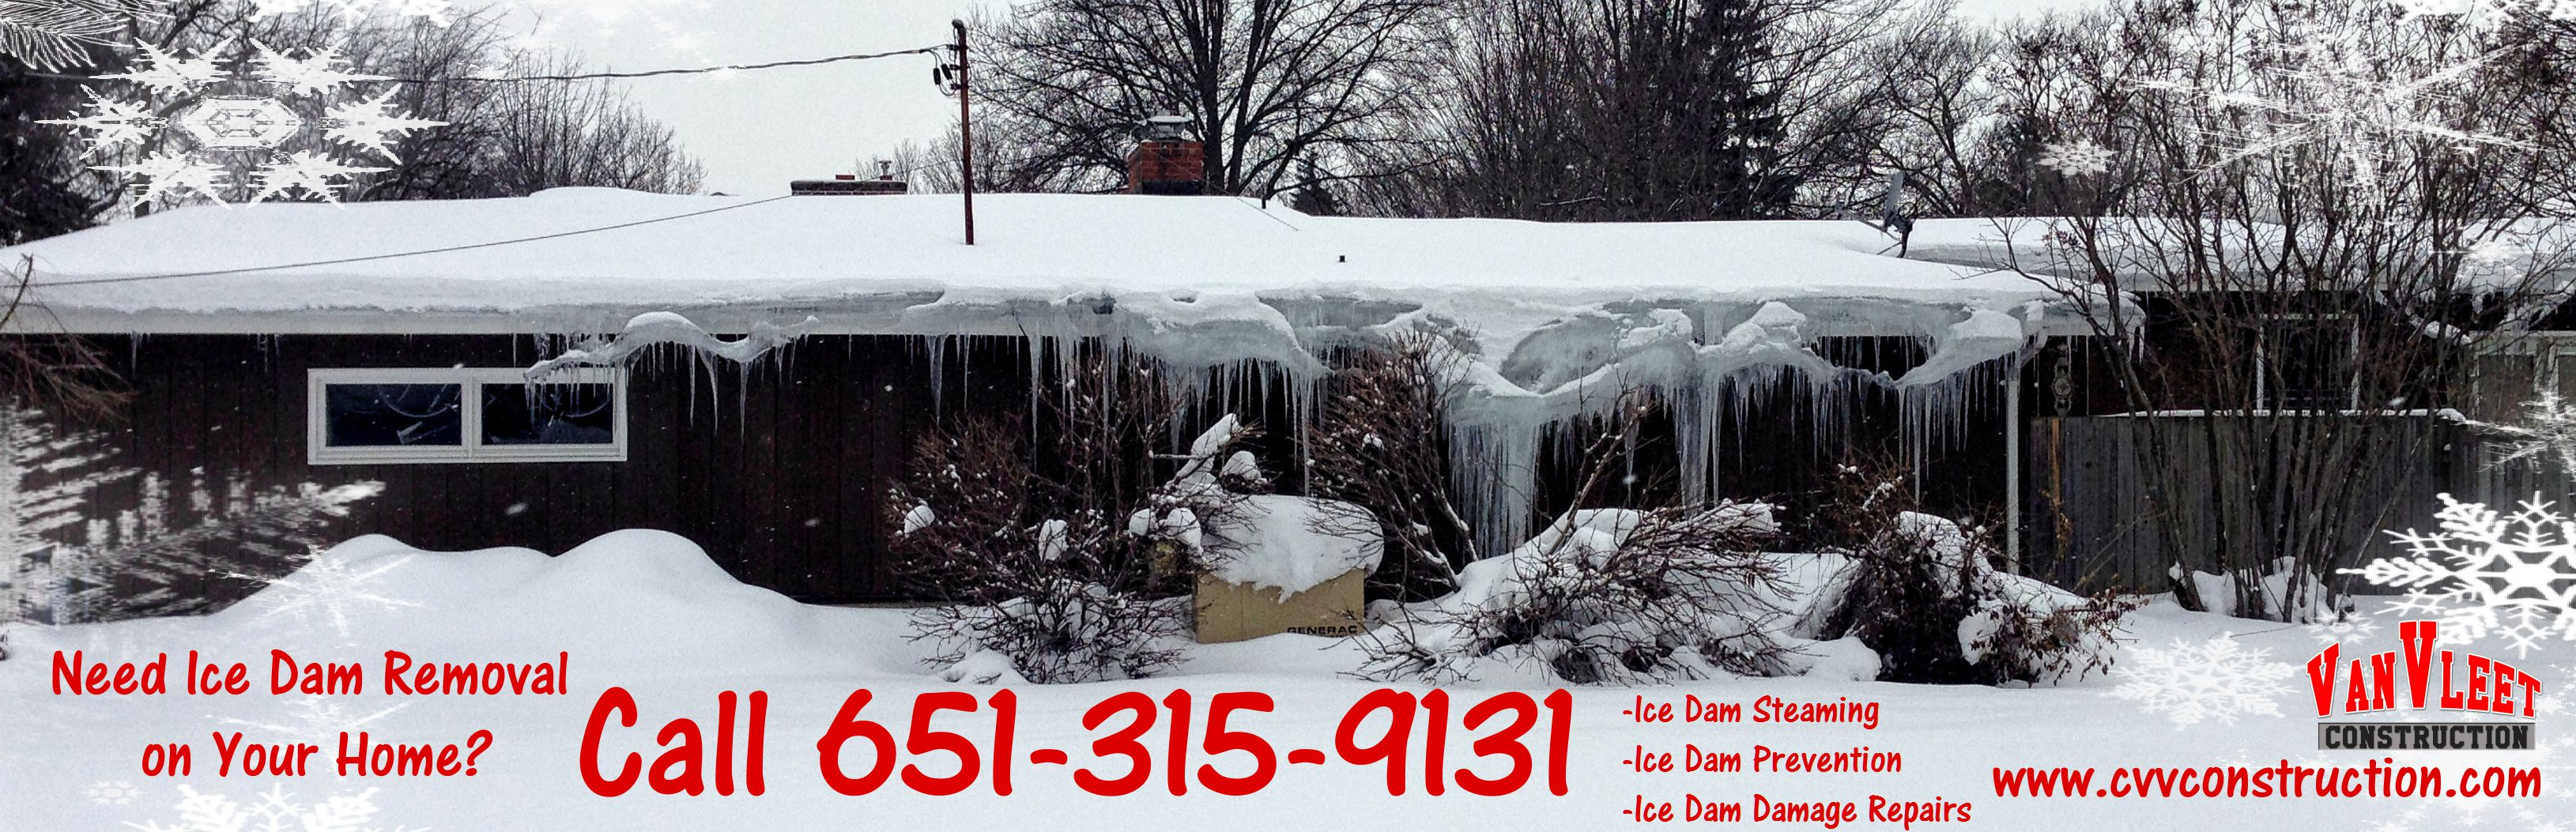 Ice Dam Removal Company, roof ice removal